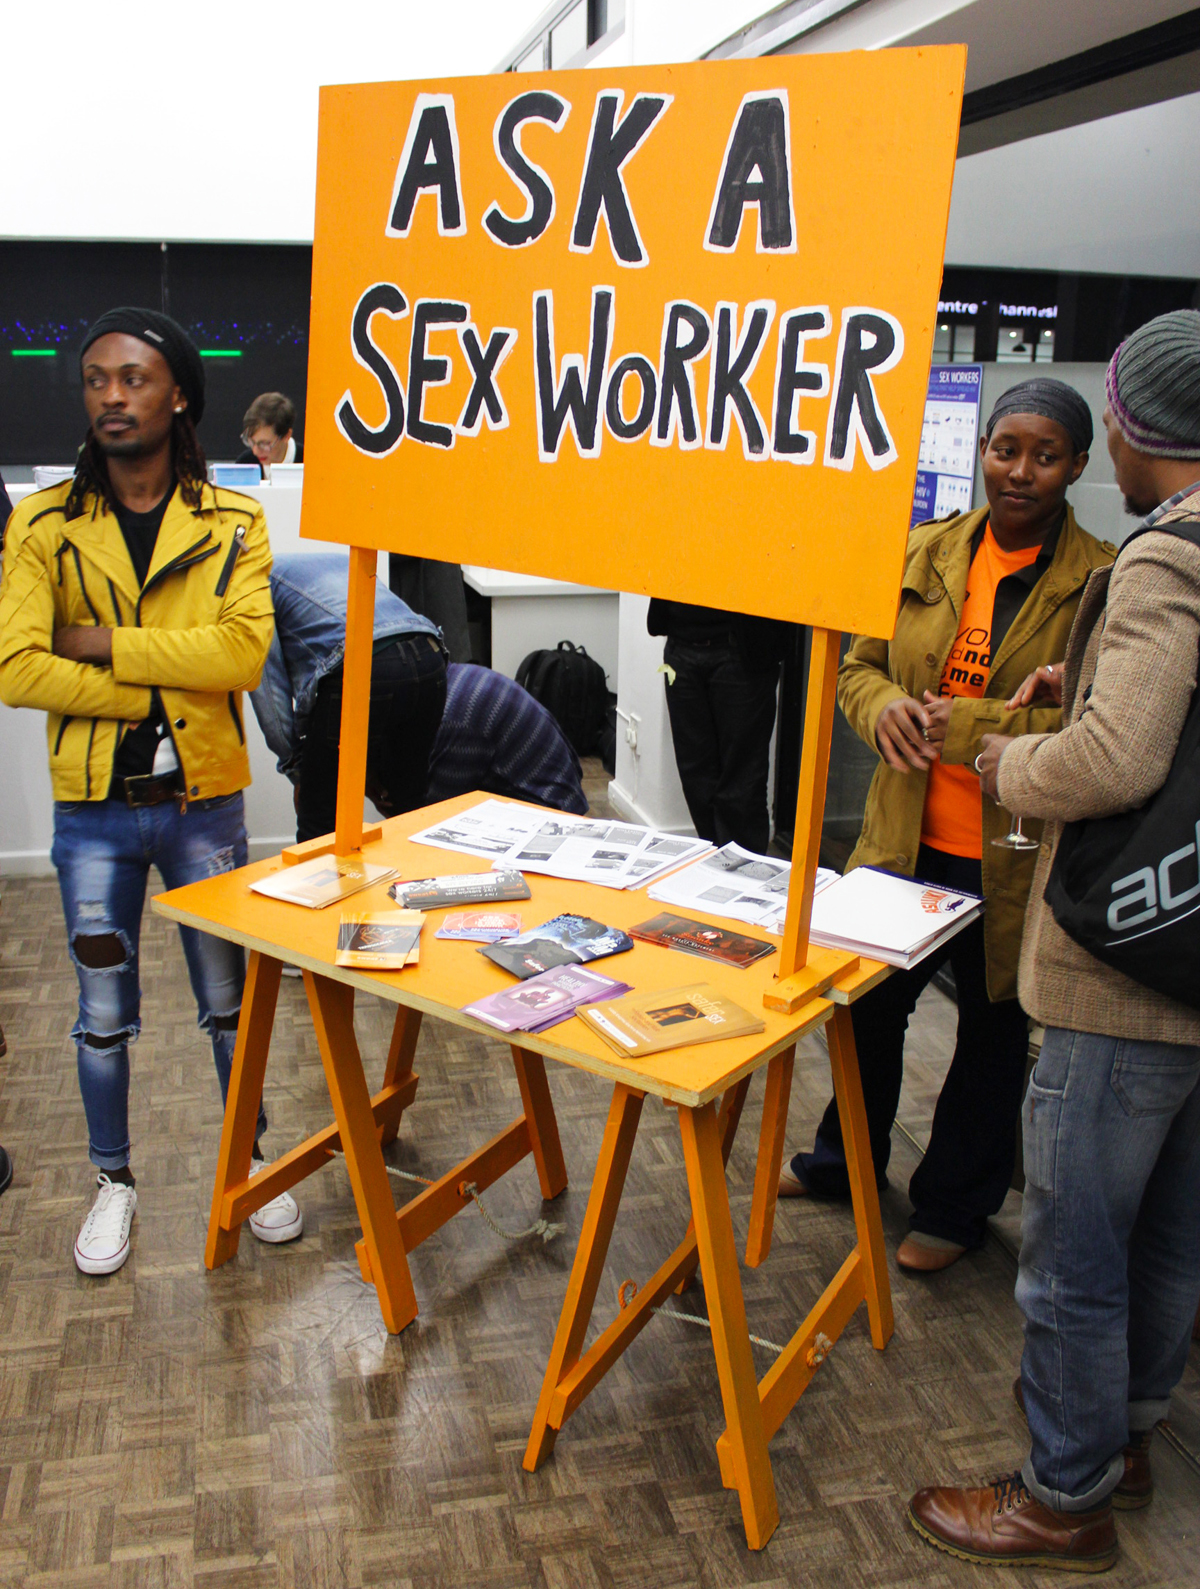 Simon Gush, Sonke Gender Justice, Sisonke Sex Workers Movement and SWEAT - Ask a Sex Worker, 2016